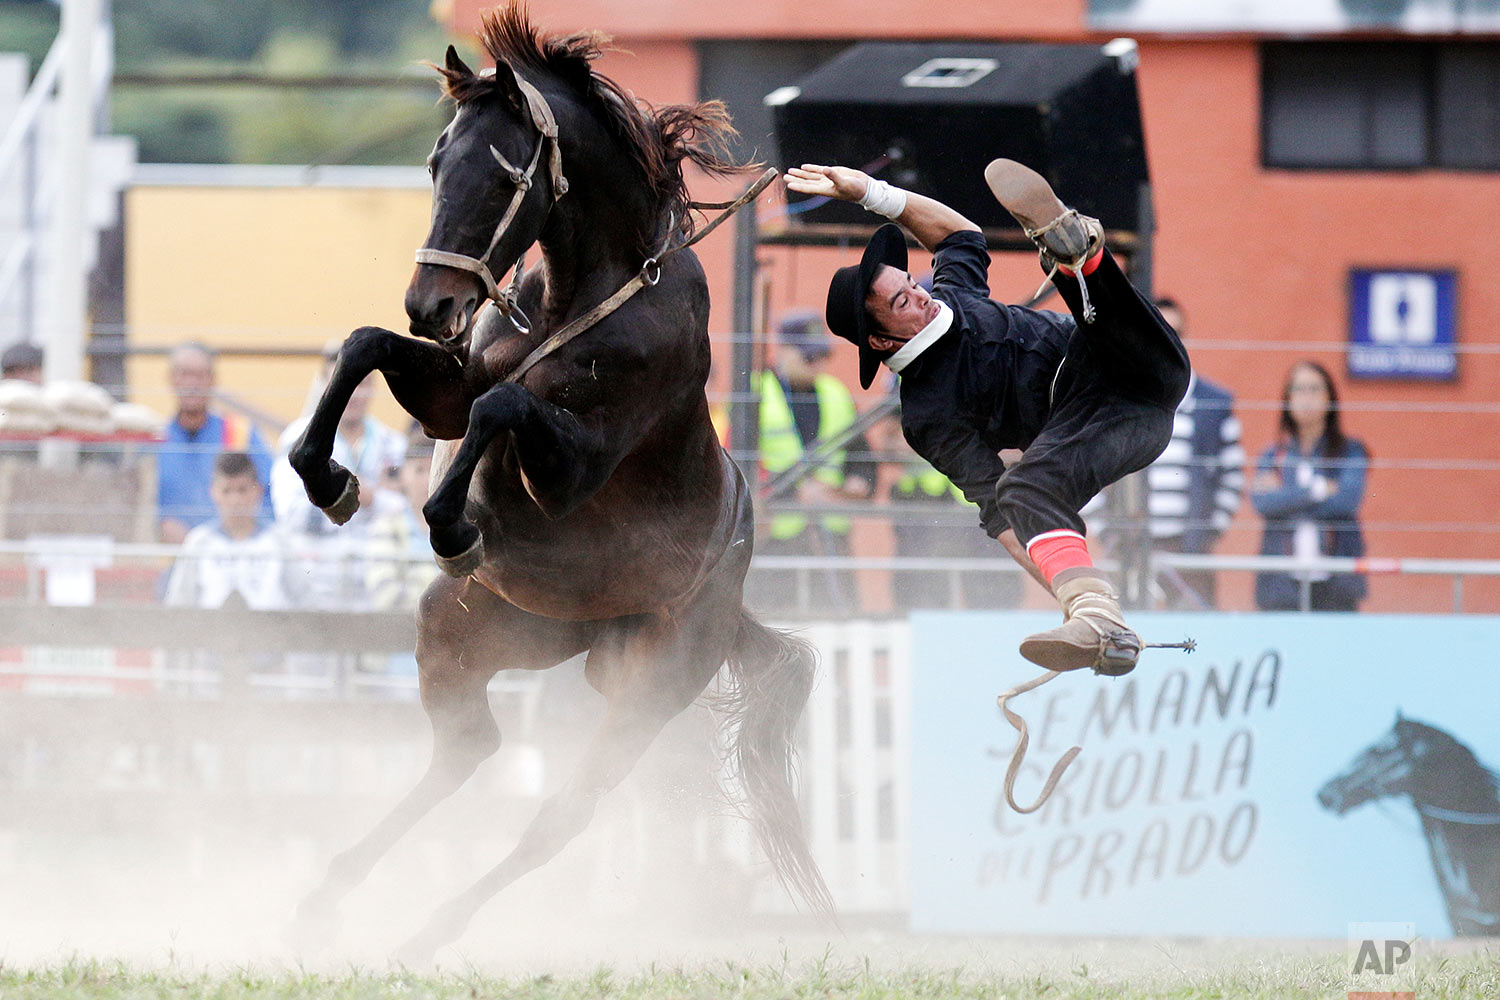 A gaucho is thrown off a wild horse during the Criolla del Prado rodeo in Montevideo, Uruguay, Wednesday, April 12, 2017. During holy week the city of Montevideo organizes the rodeo to reward the best horse riders. (AP Photo/Matilde Campodonico)